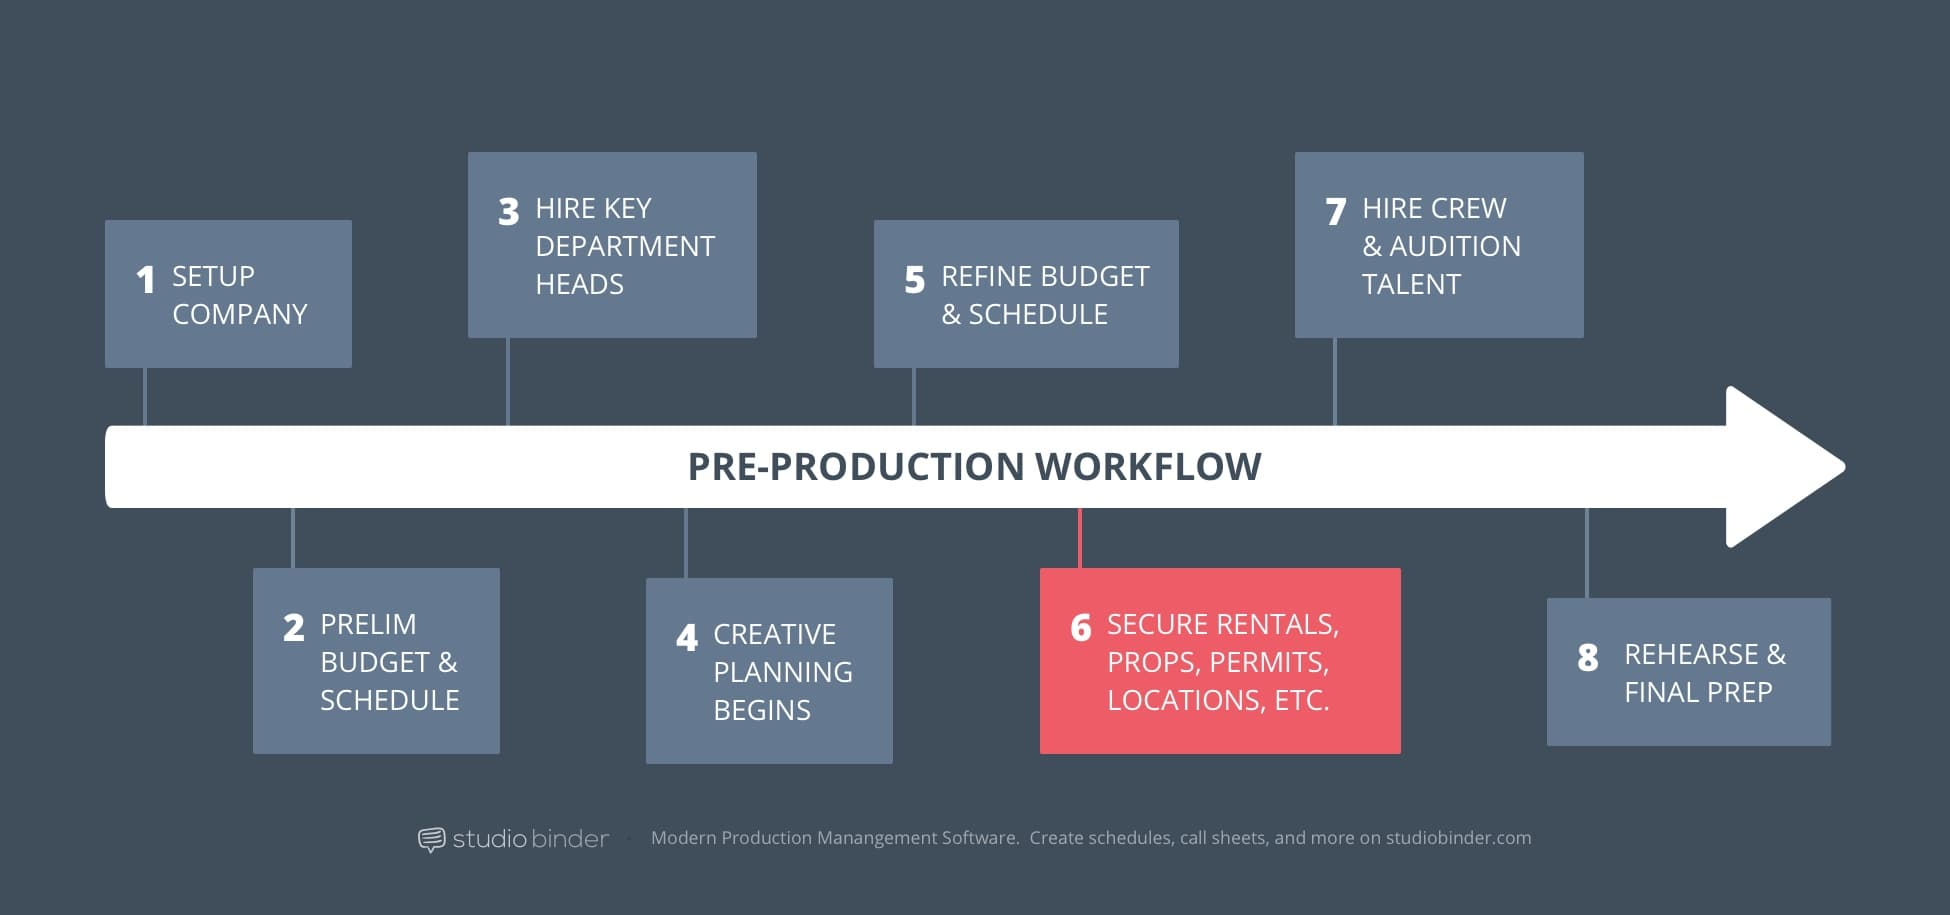 6 – StudioBinder Pre-Production Workflow – Secure Locations